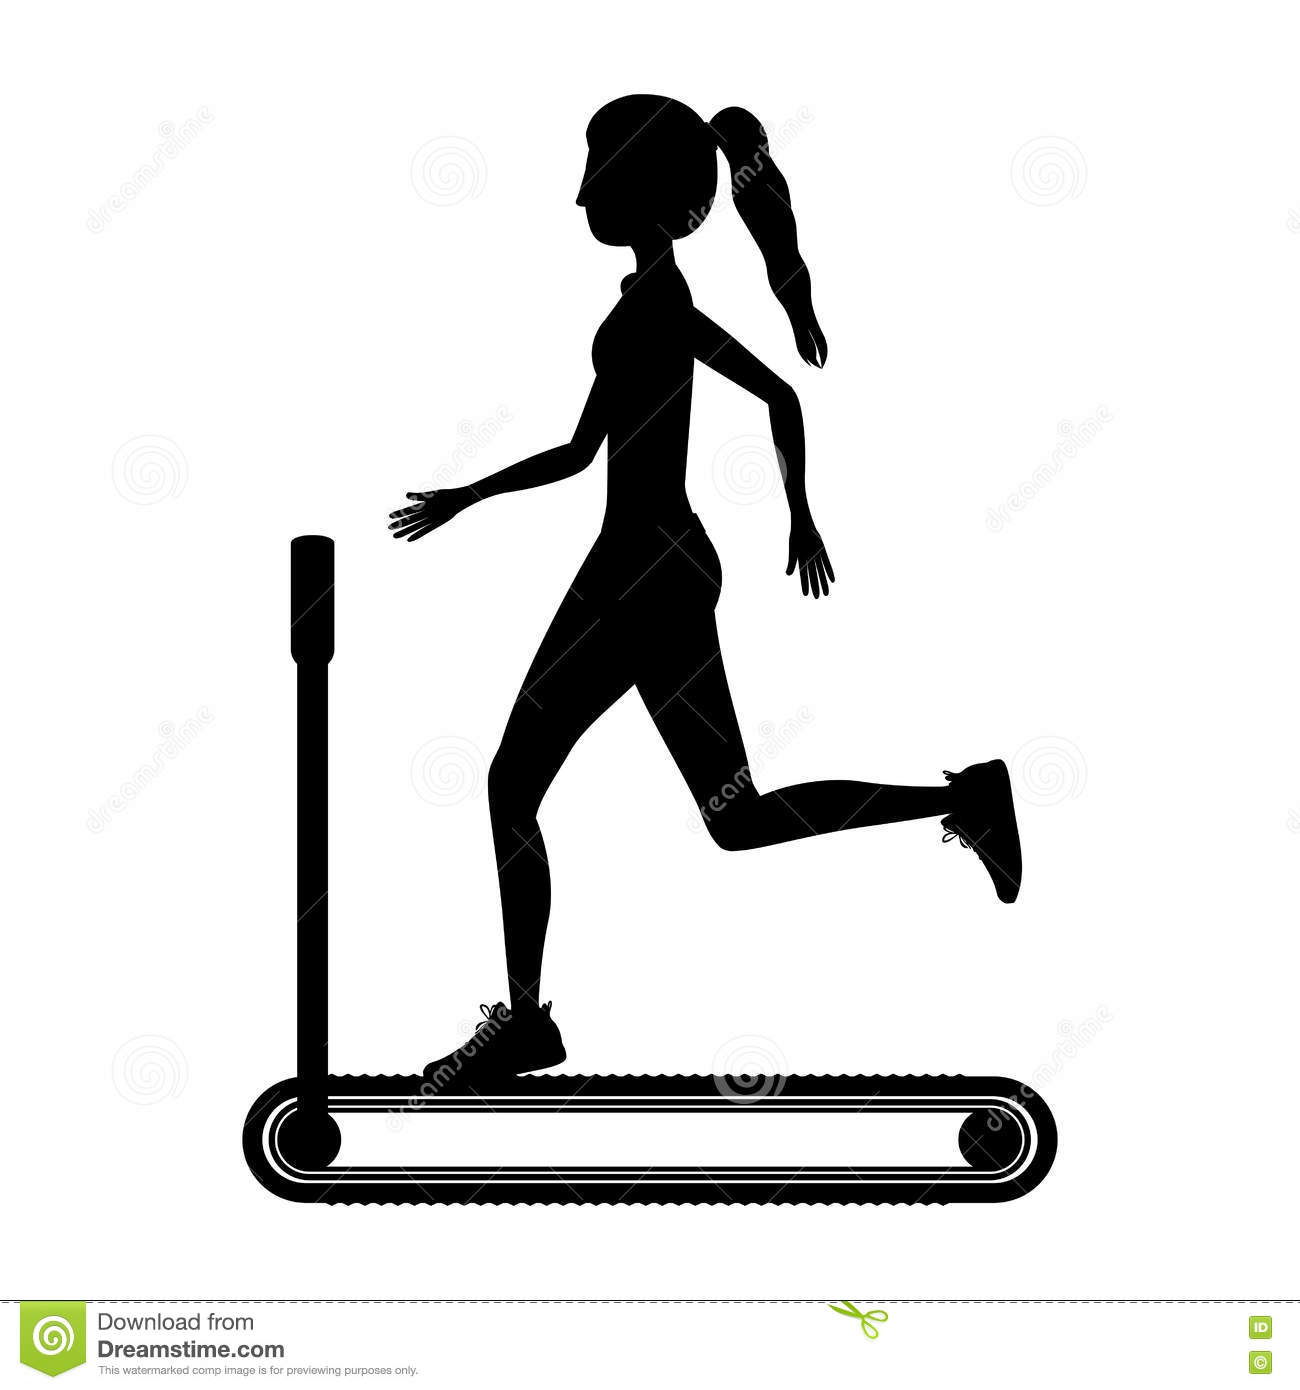 Silhouette with woman in treadmill